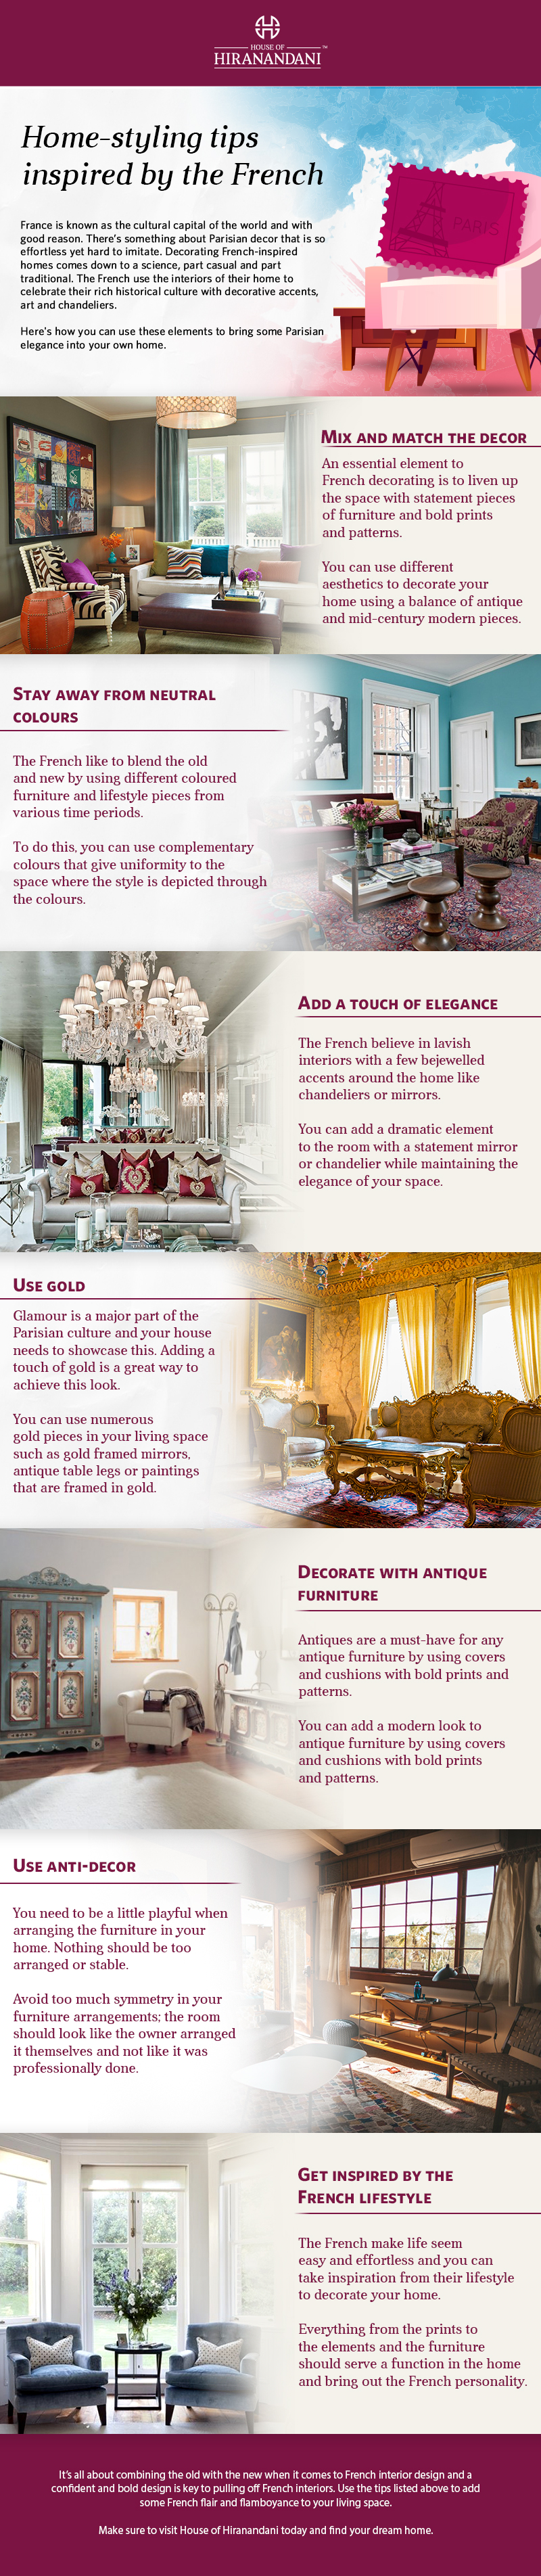 Home-styling tips inspired by the French